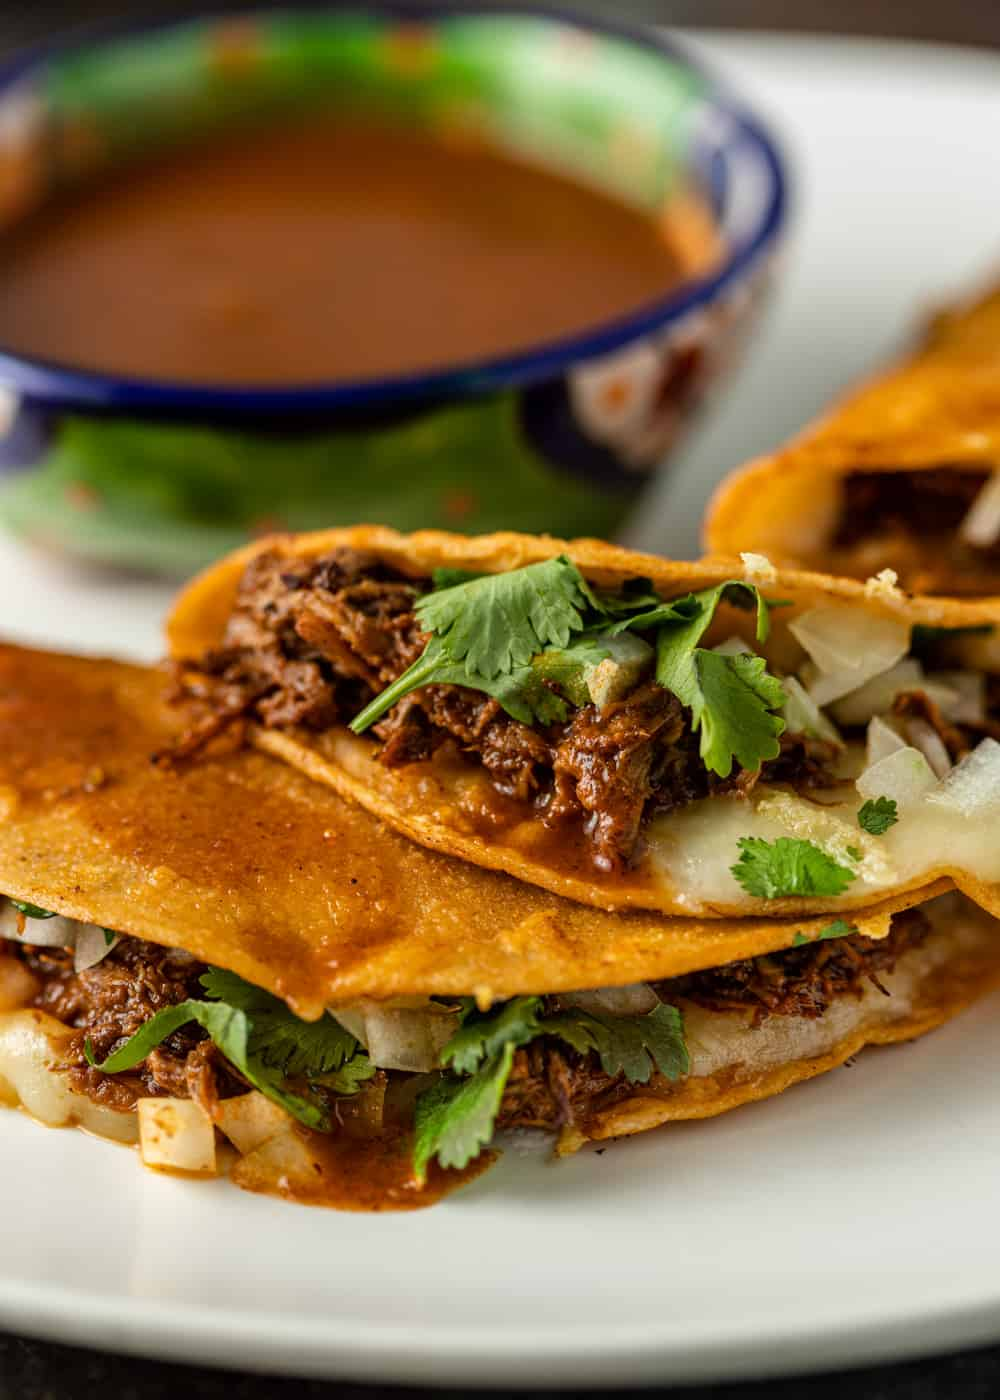 close up of a juicy sauced birria taco with melted cheese and a bowl of consomme